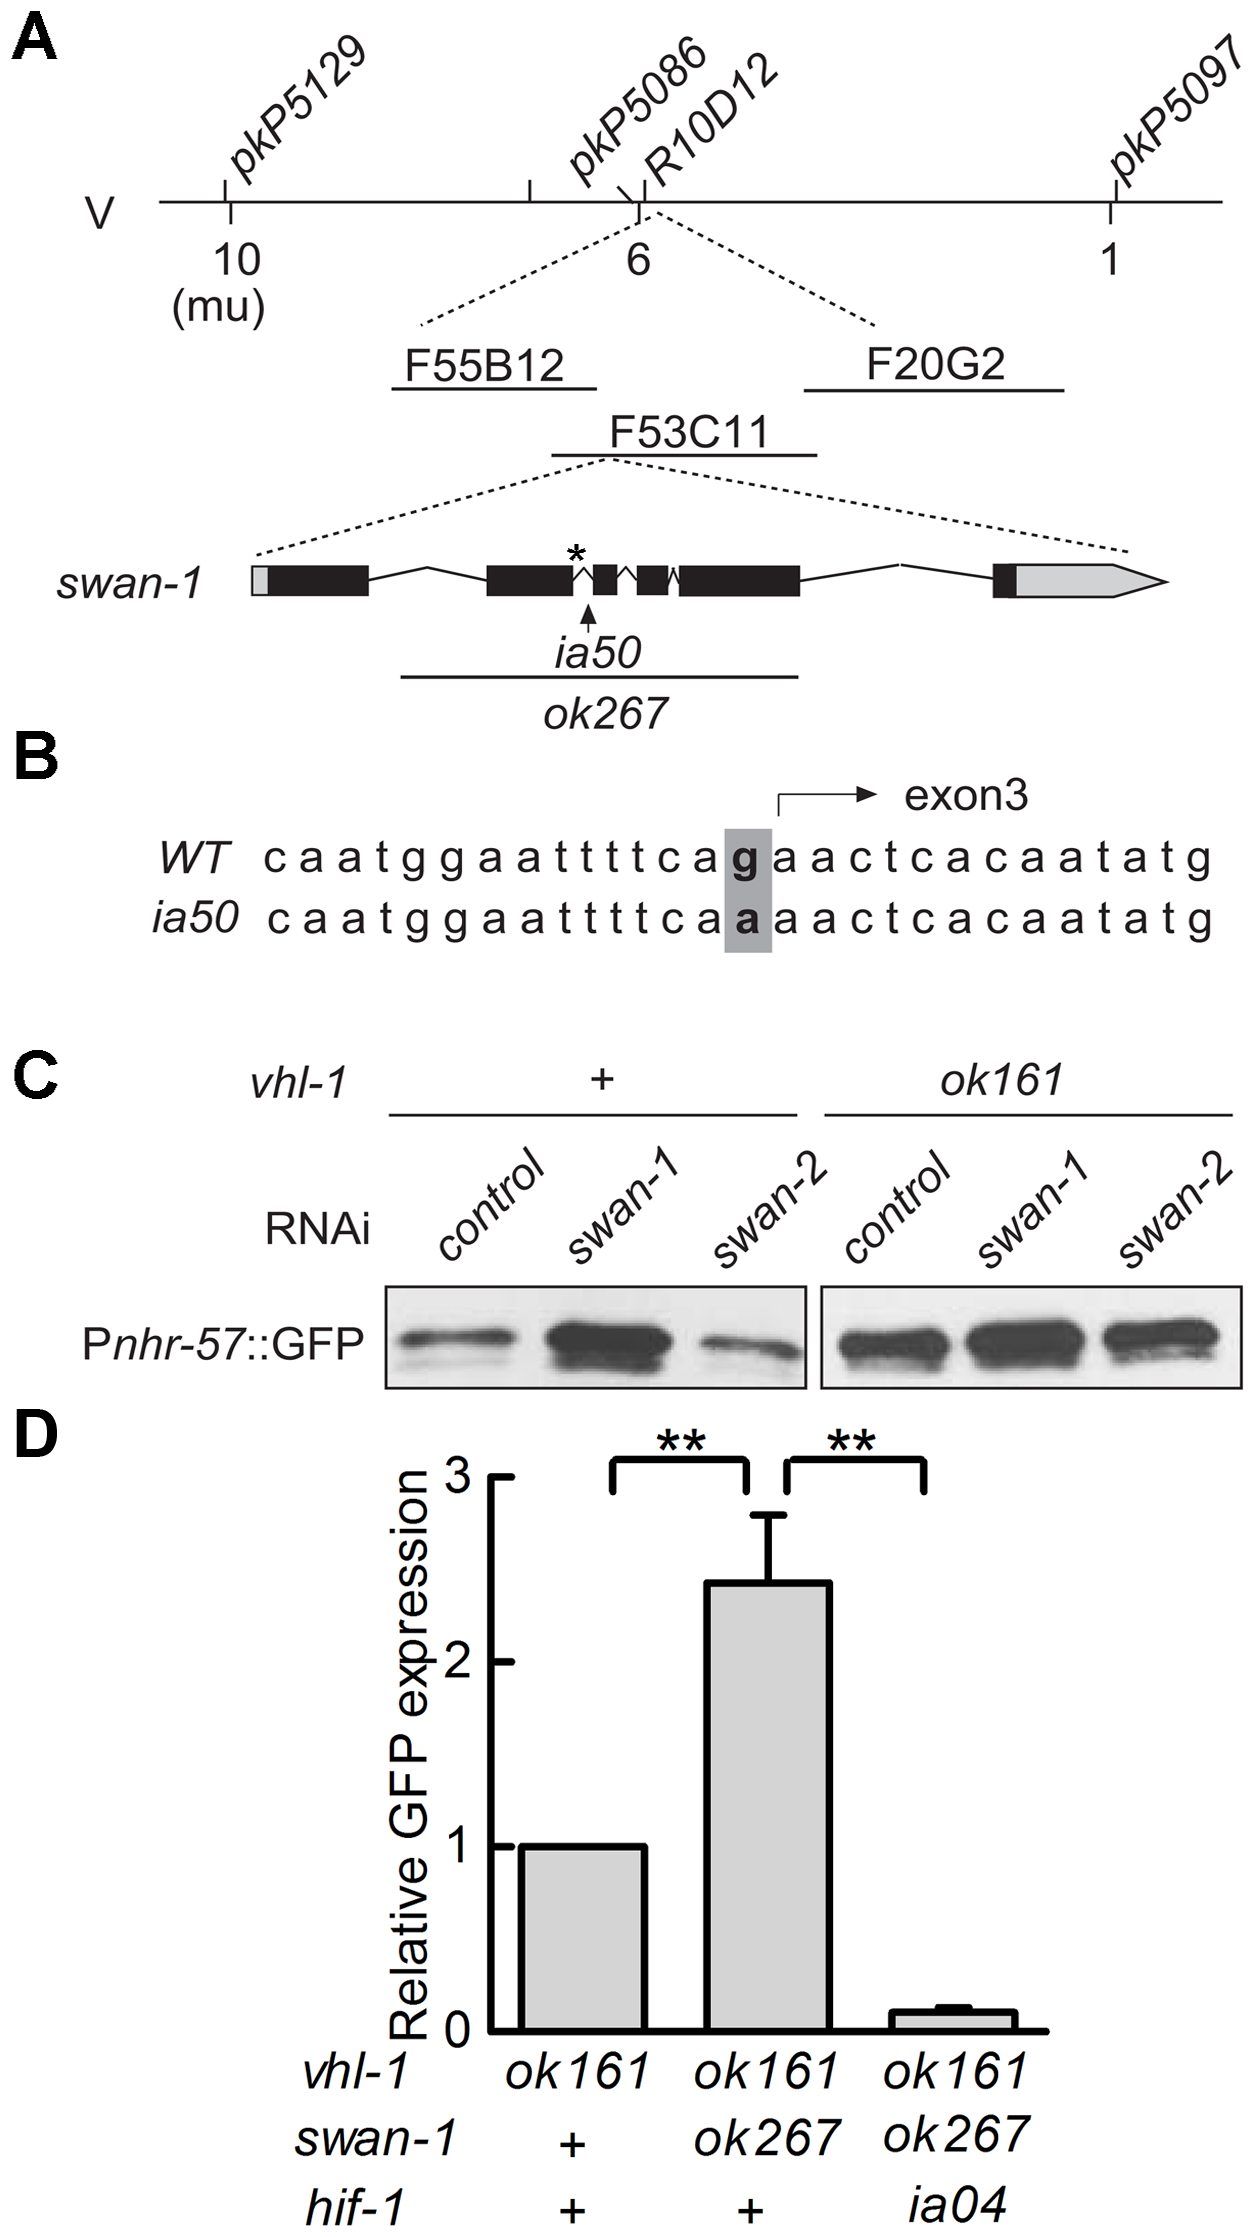 <i>ia50</i> is a loss of function mutation in the <i>swan-1</i> gene.